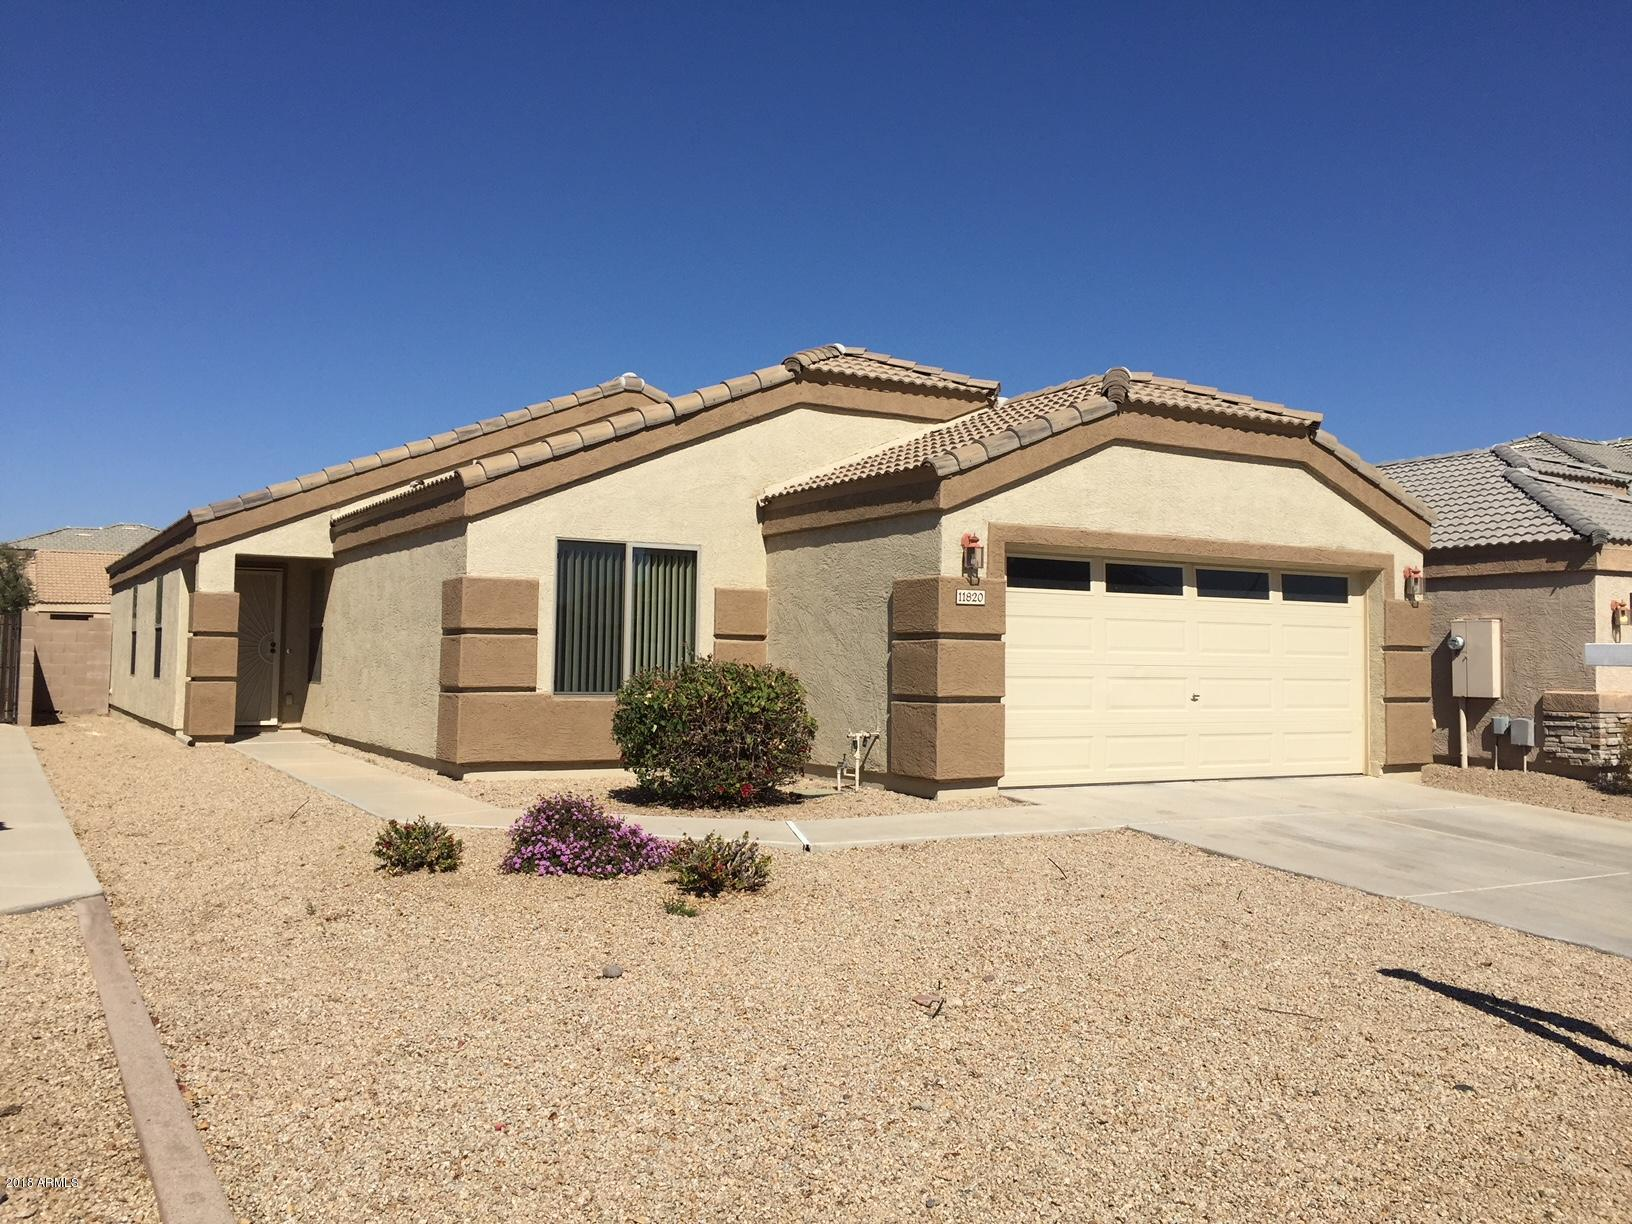 El Mirage and Youngtown - GoodGlendaleHomesForSale